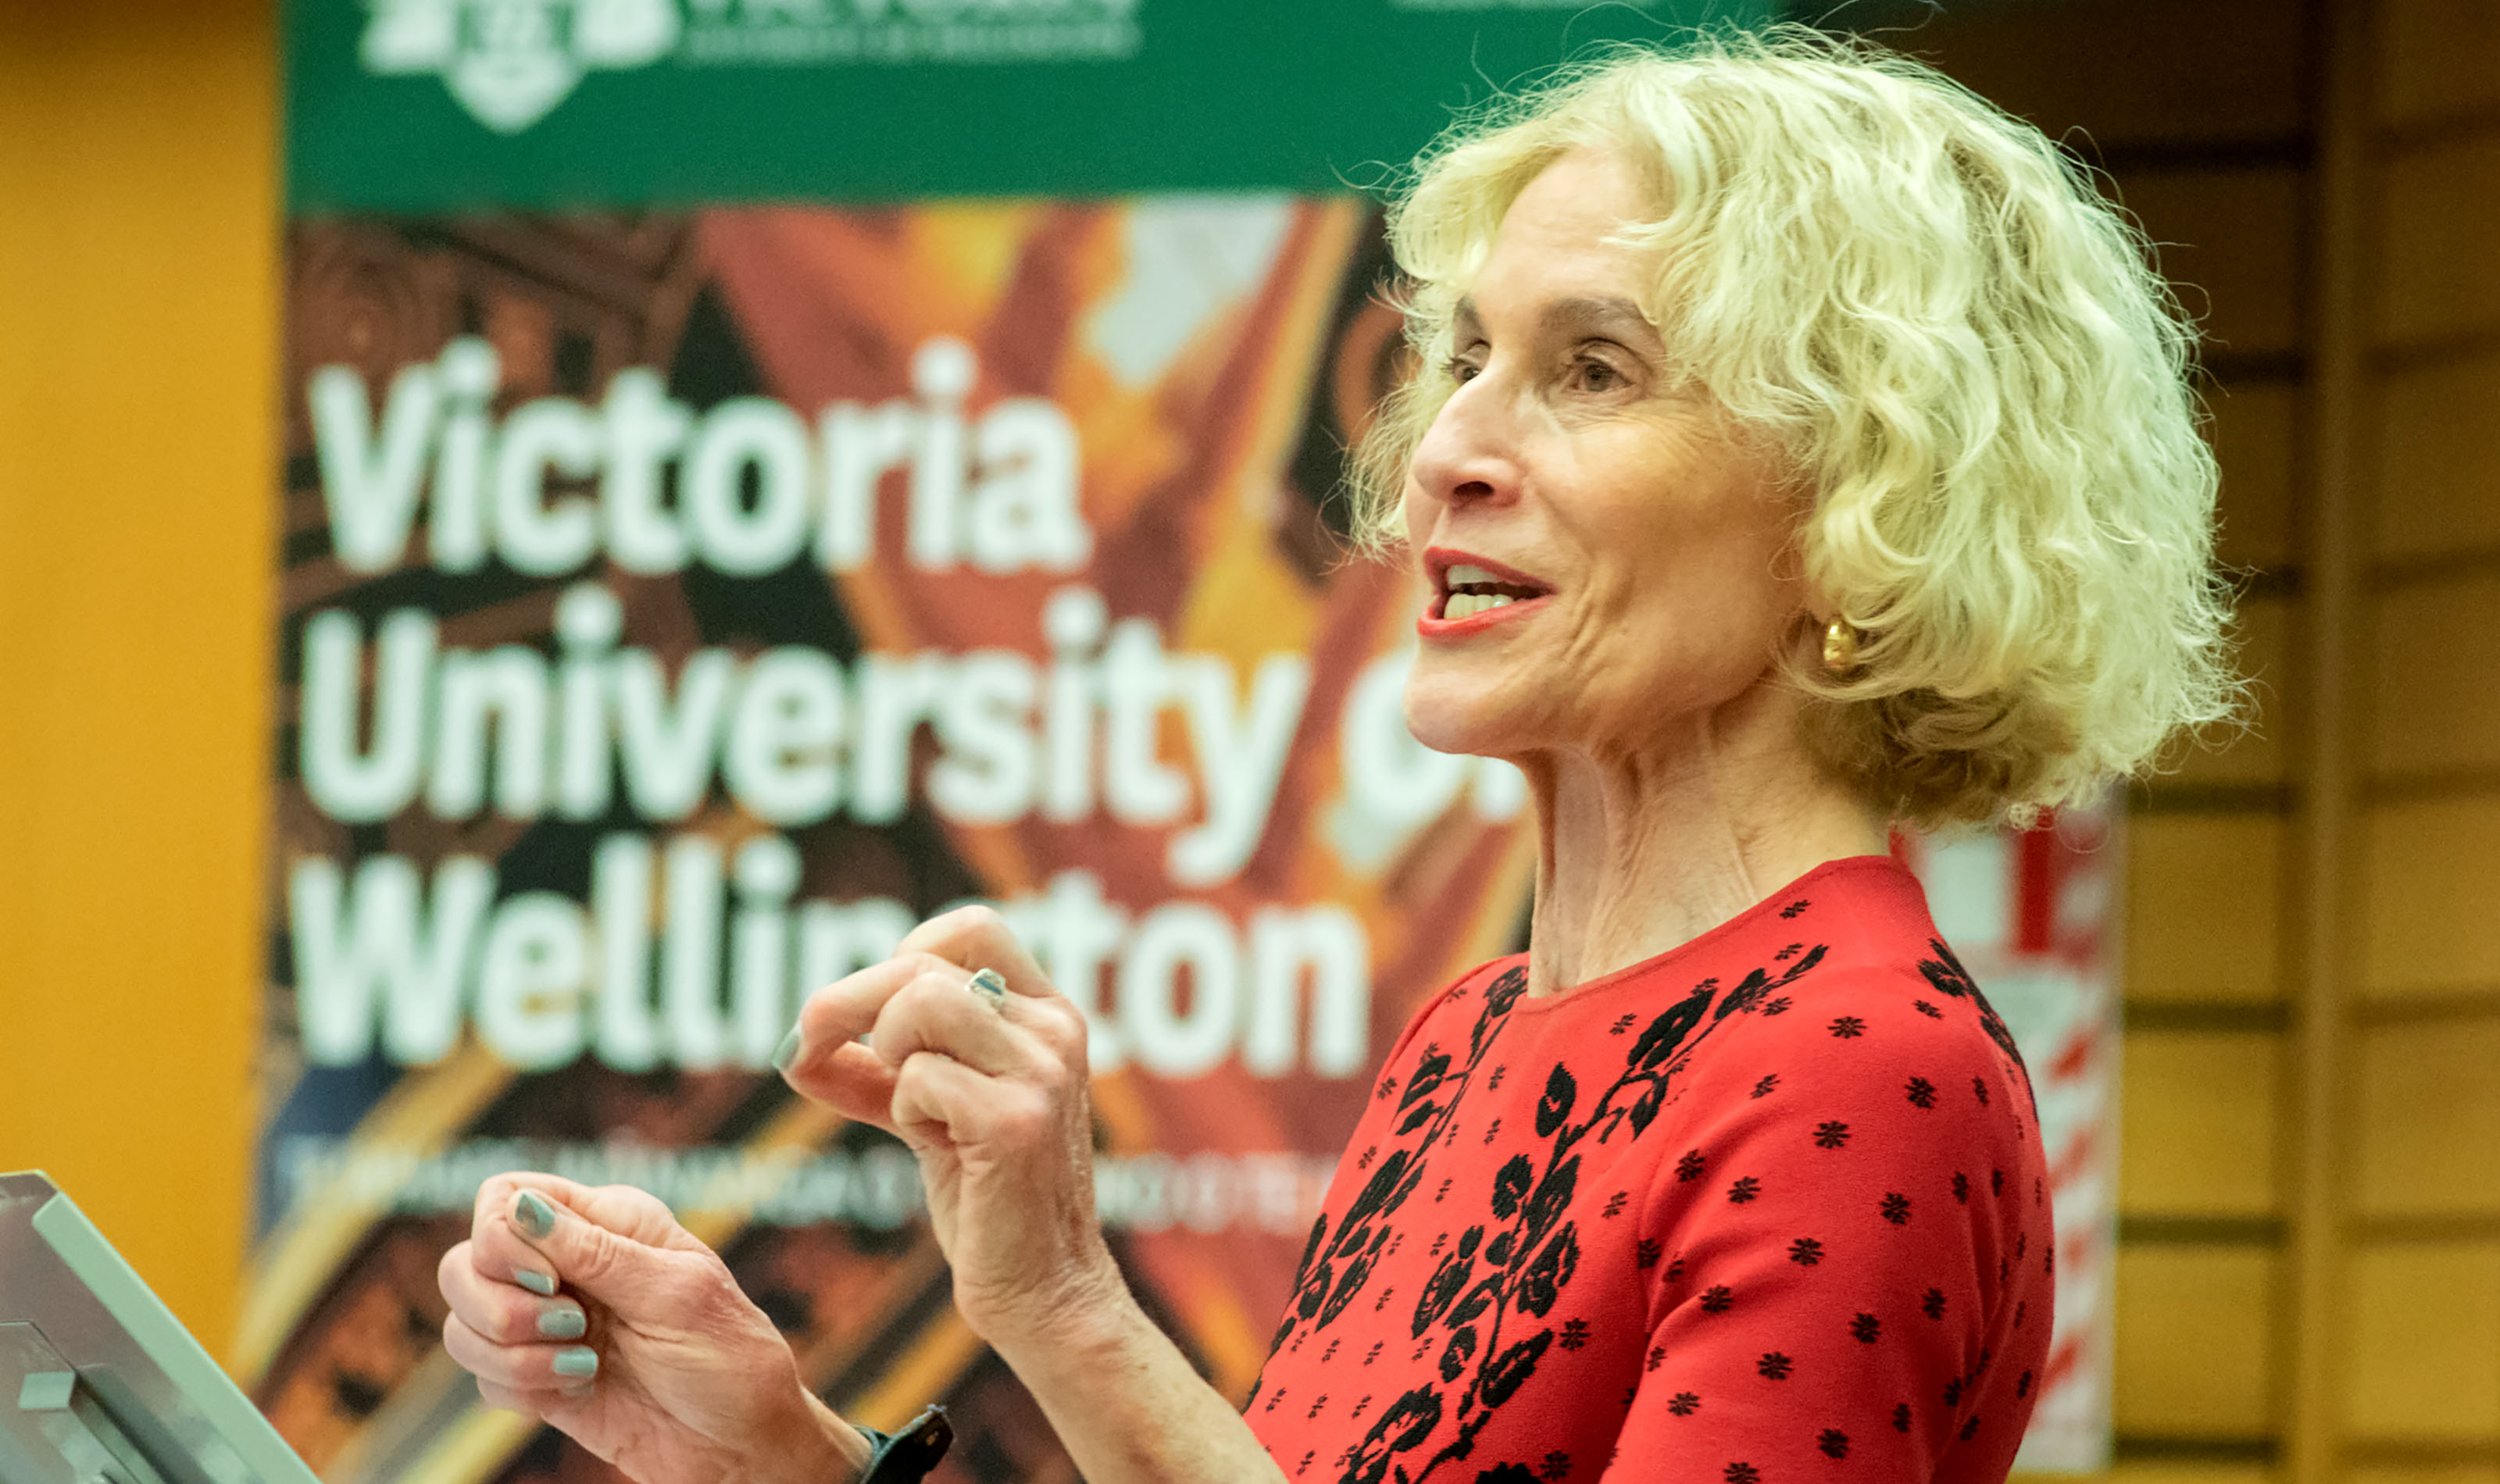 Professor Martha Nussbaum giving the Faculty of Law's annual Borrin lecture